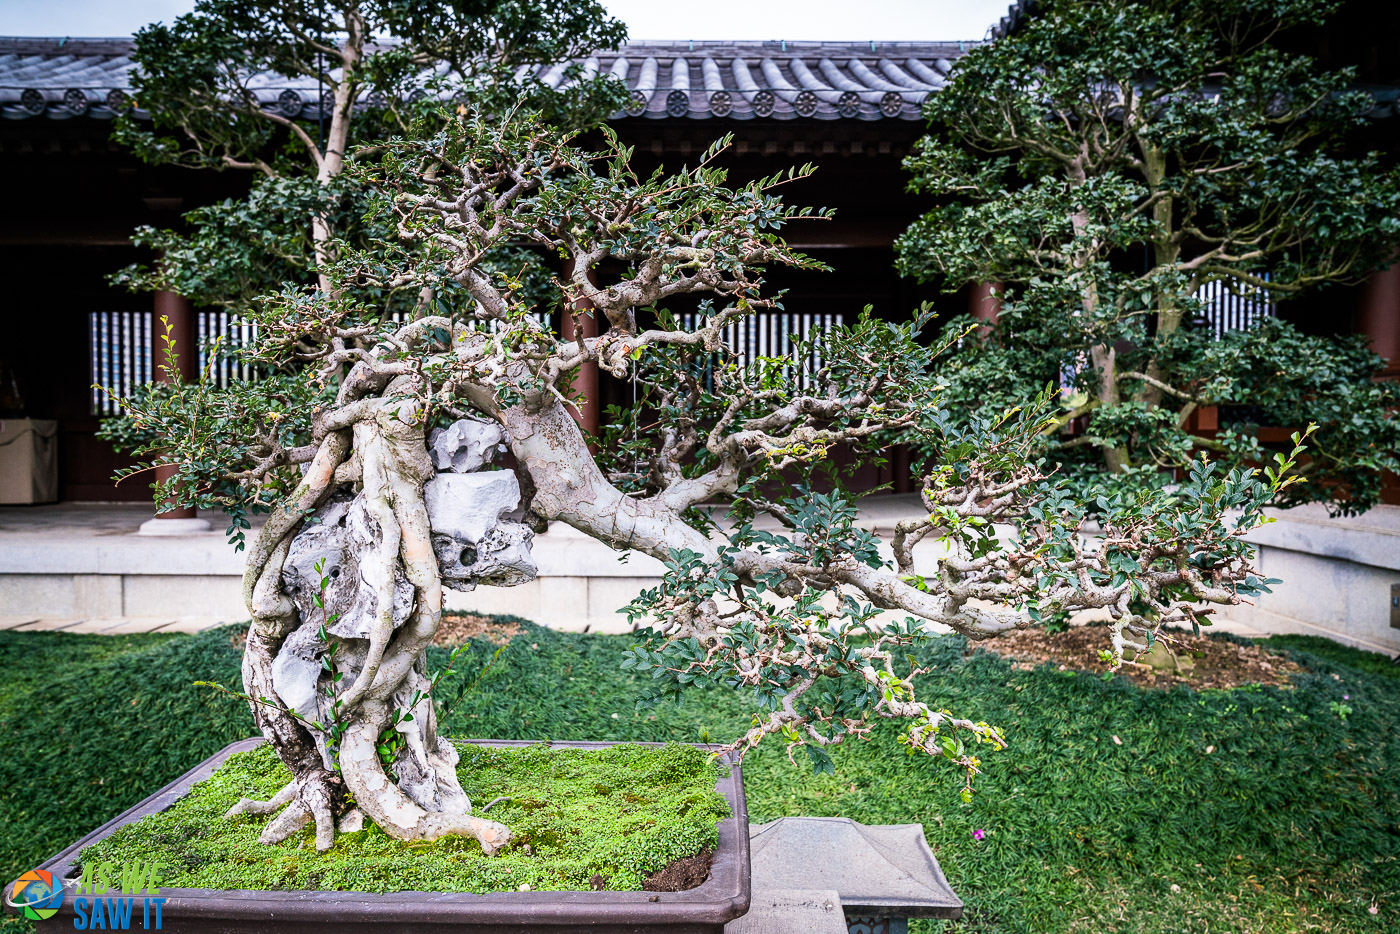 Incredible display of Bonsai trees